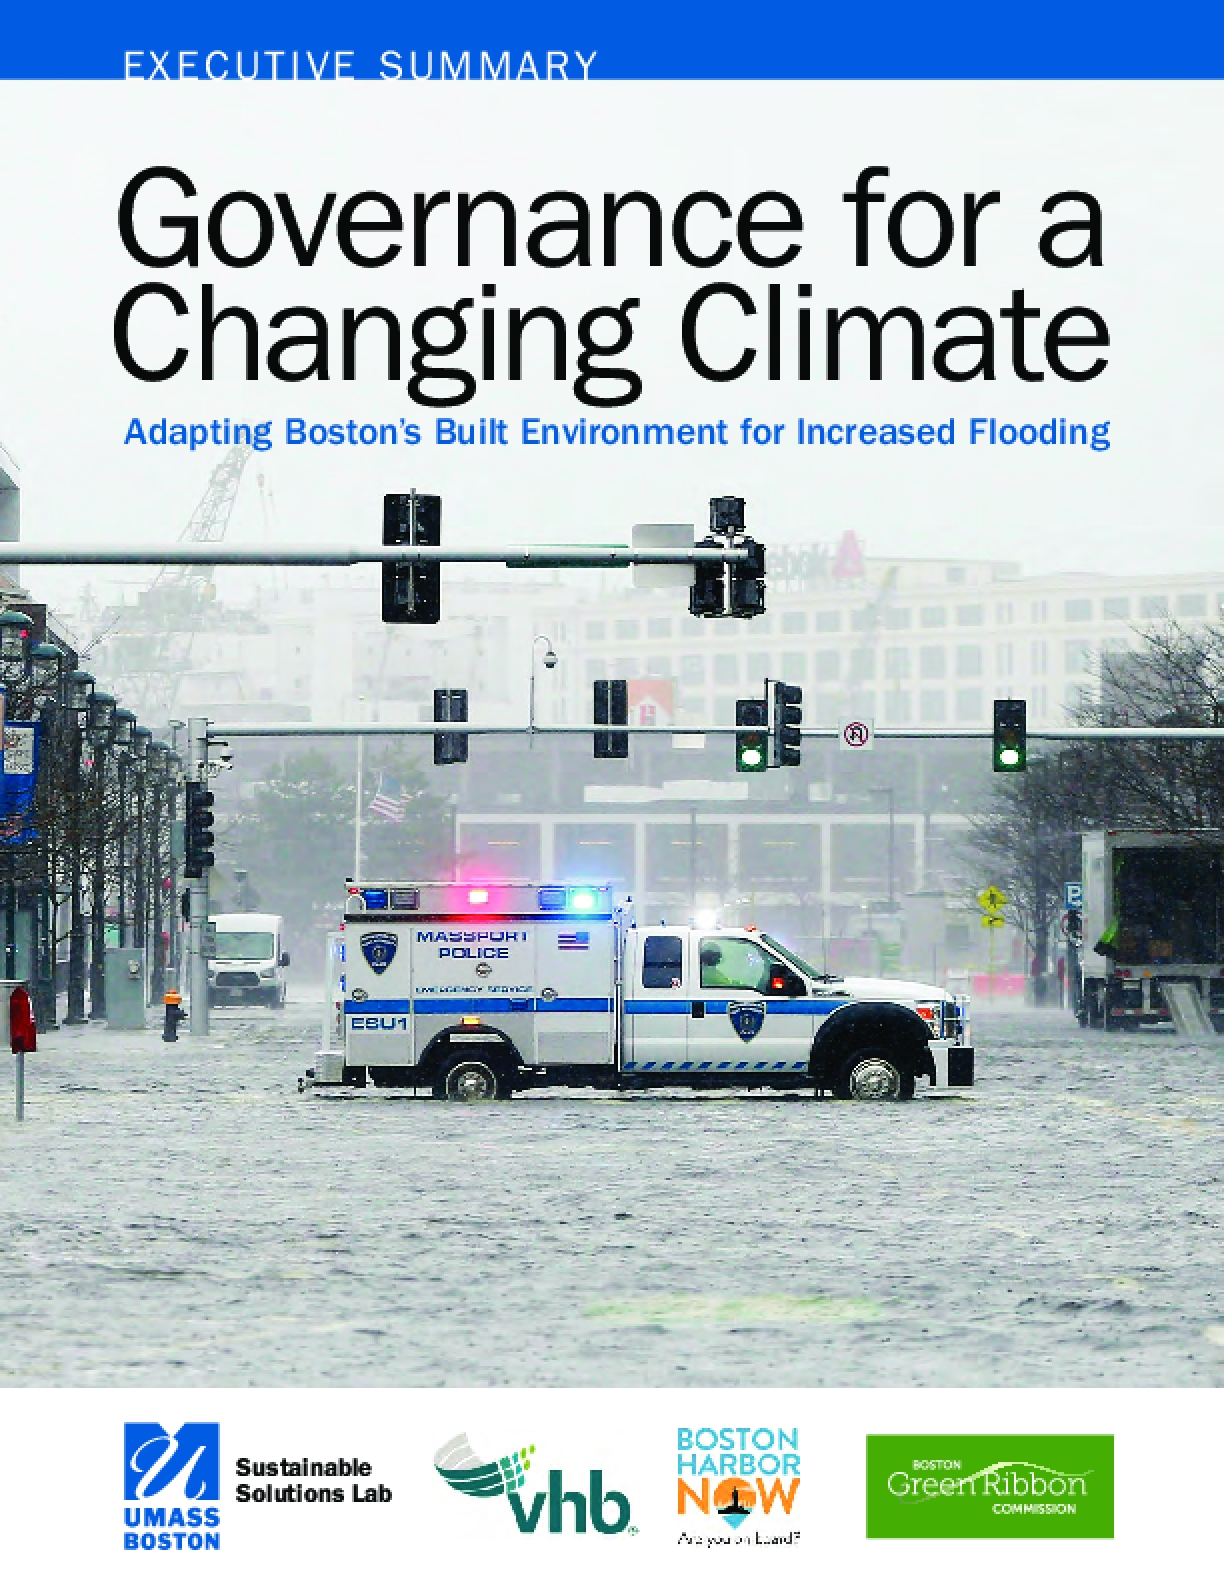 Governance for a Changing Climate: Adapting Boston's Built Environment for Increased Flooding